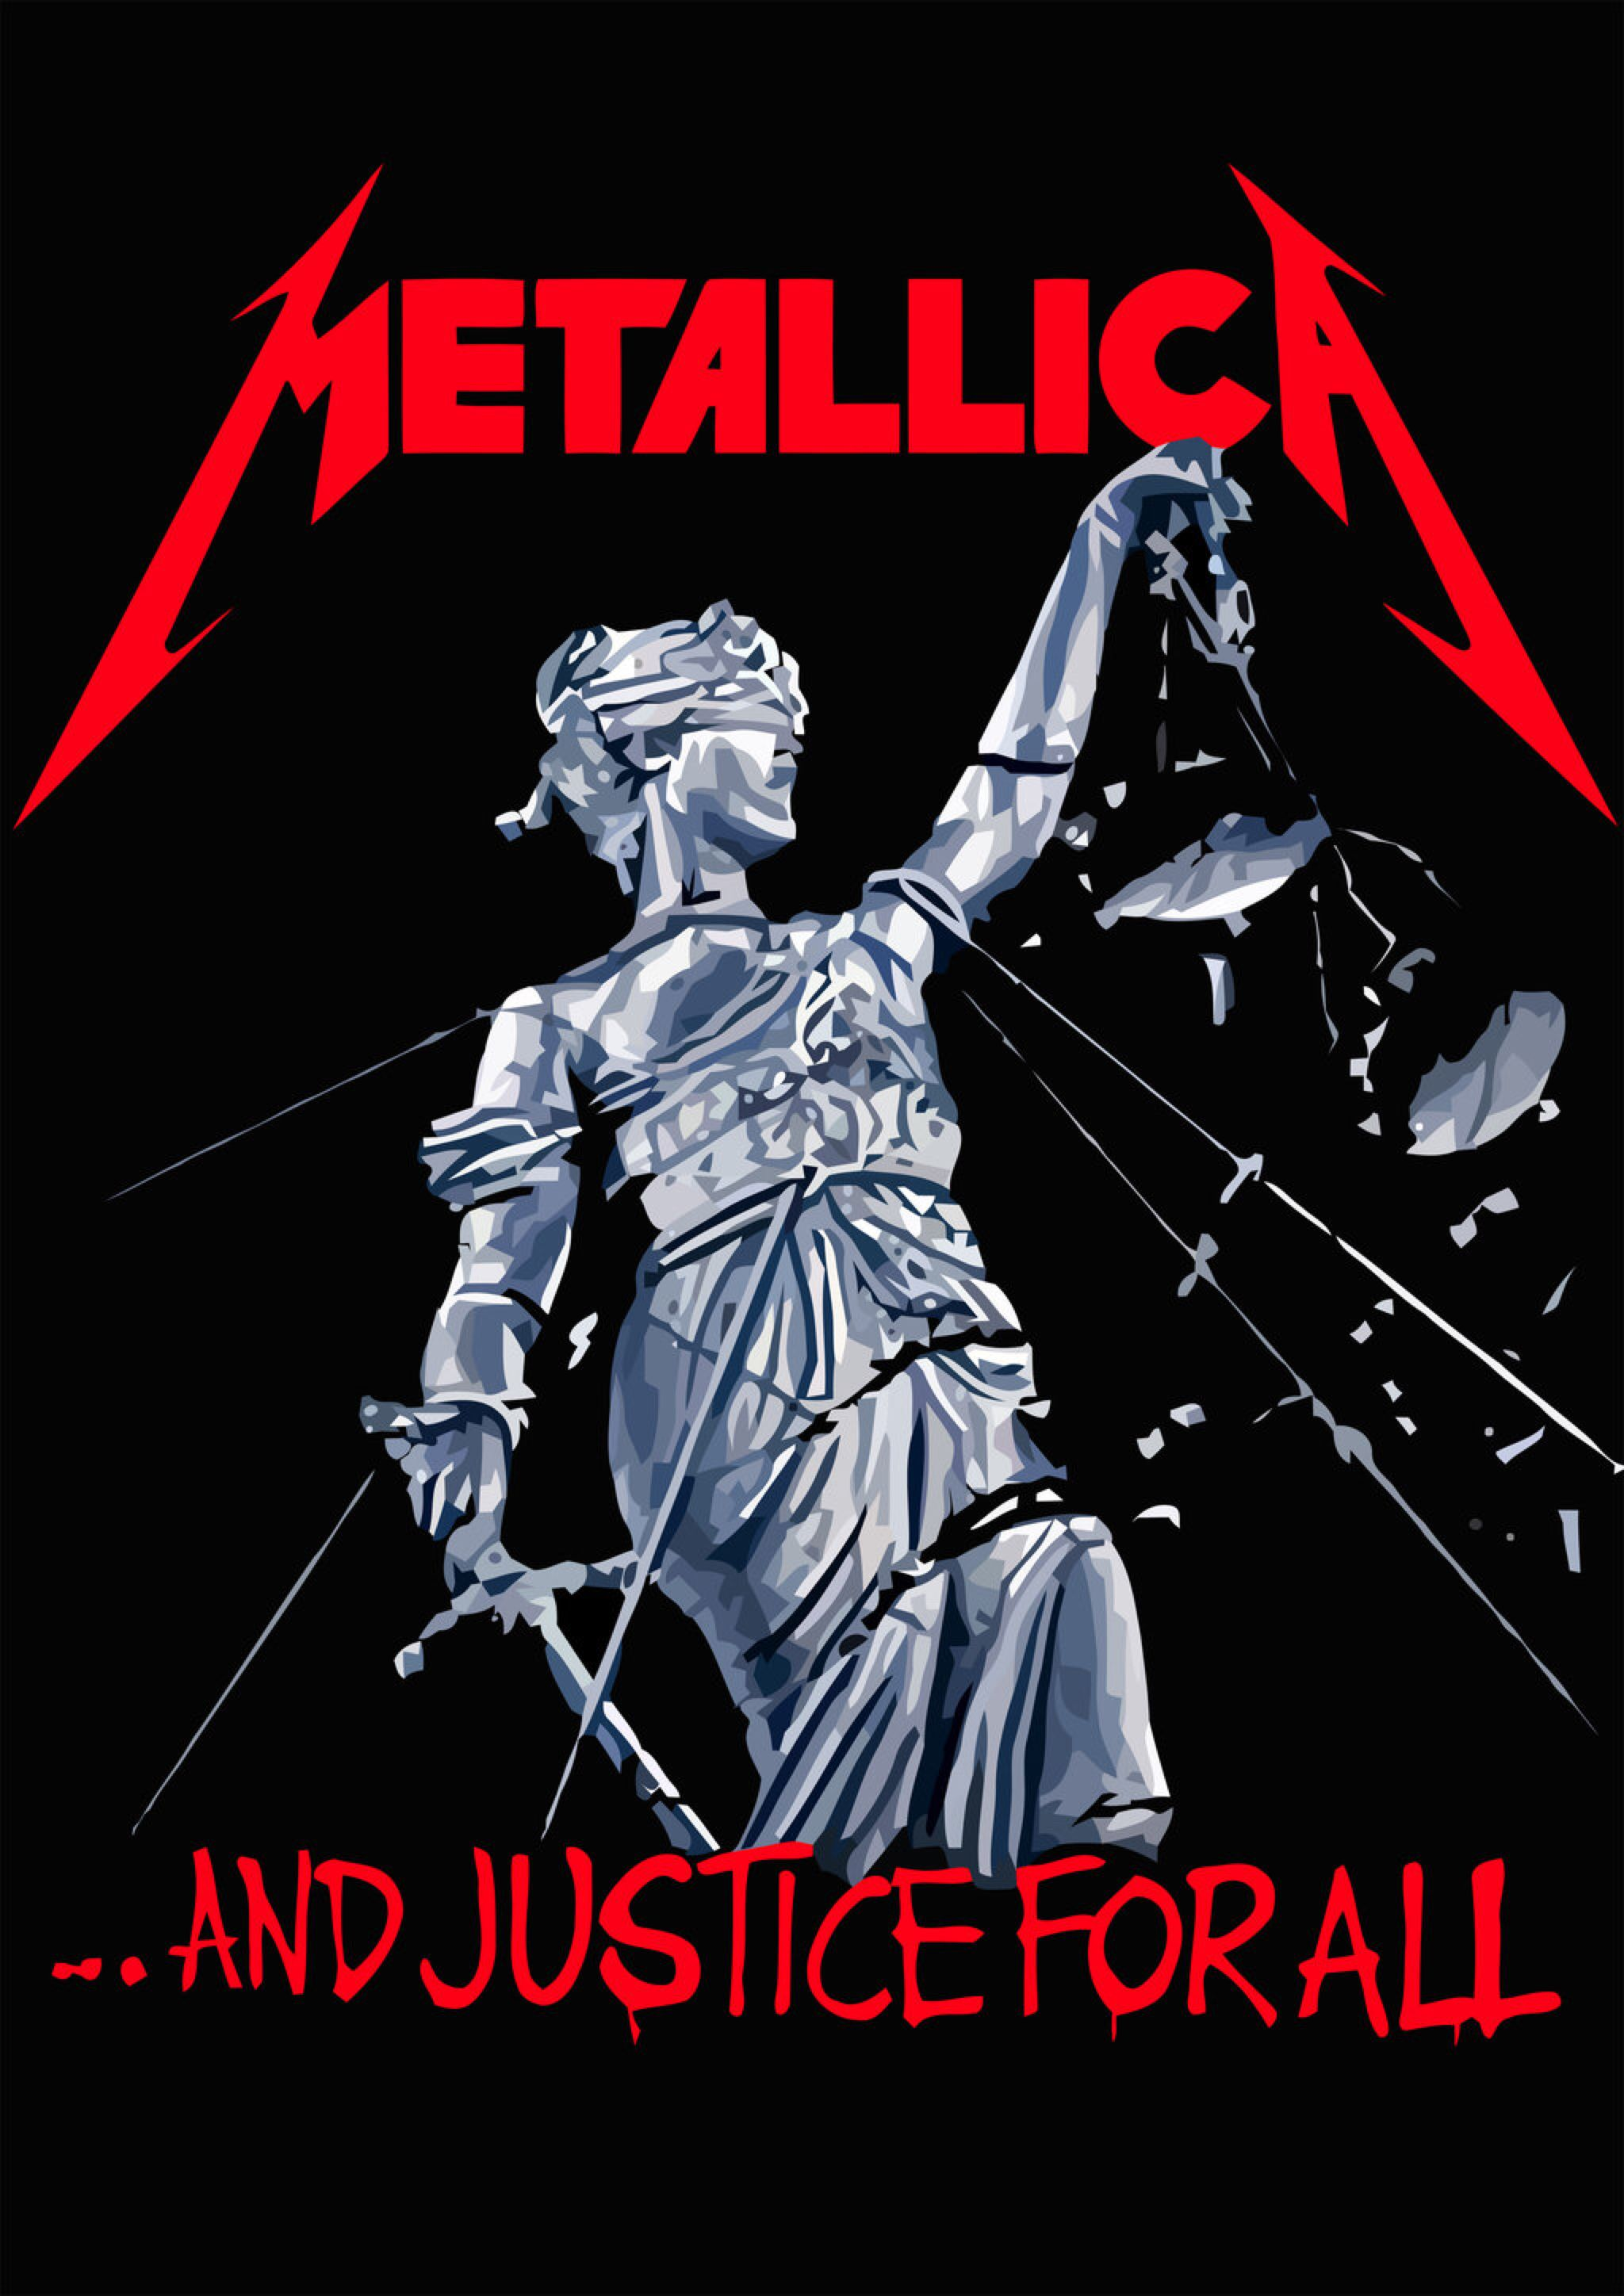 MetallicA And Justice for All by croatiancrusader on